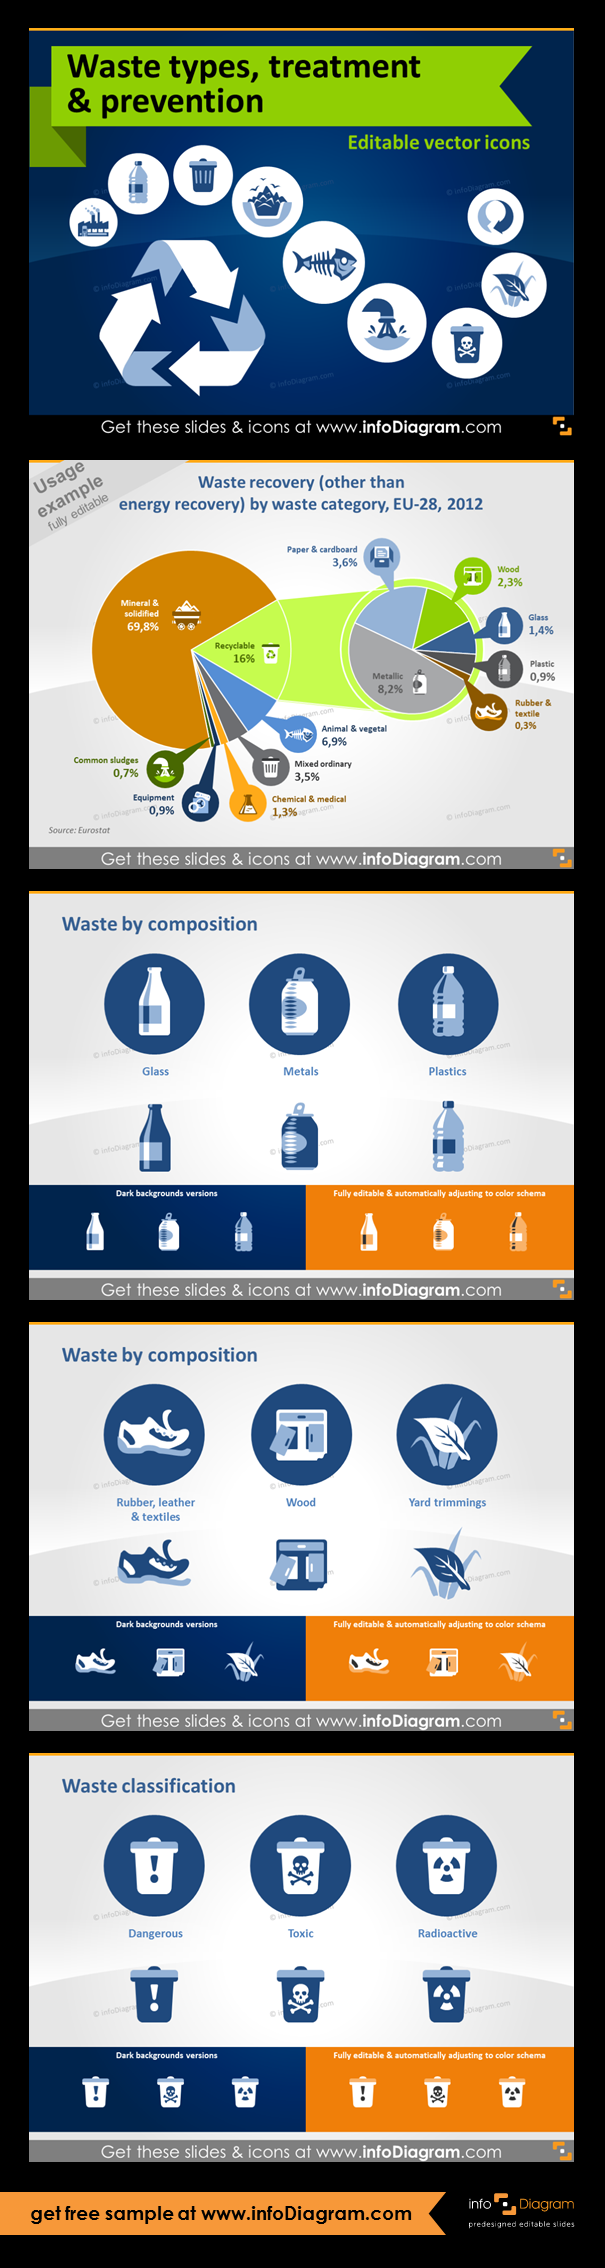 Waste and Ecology icons and visuals for waste industry